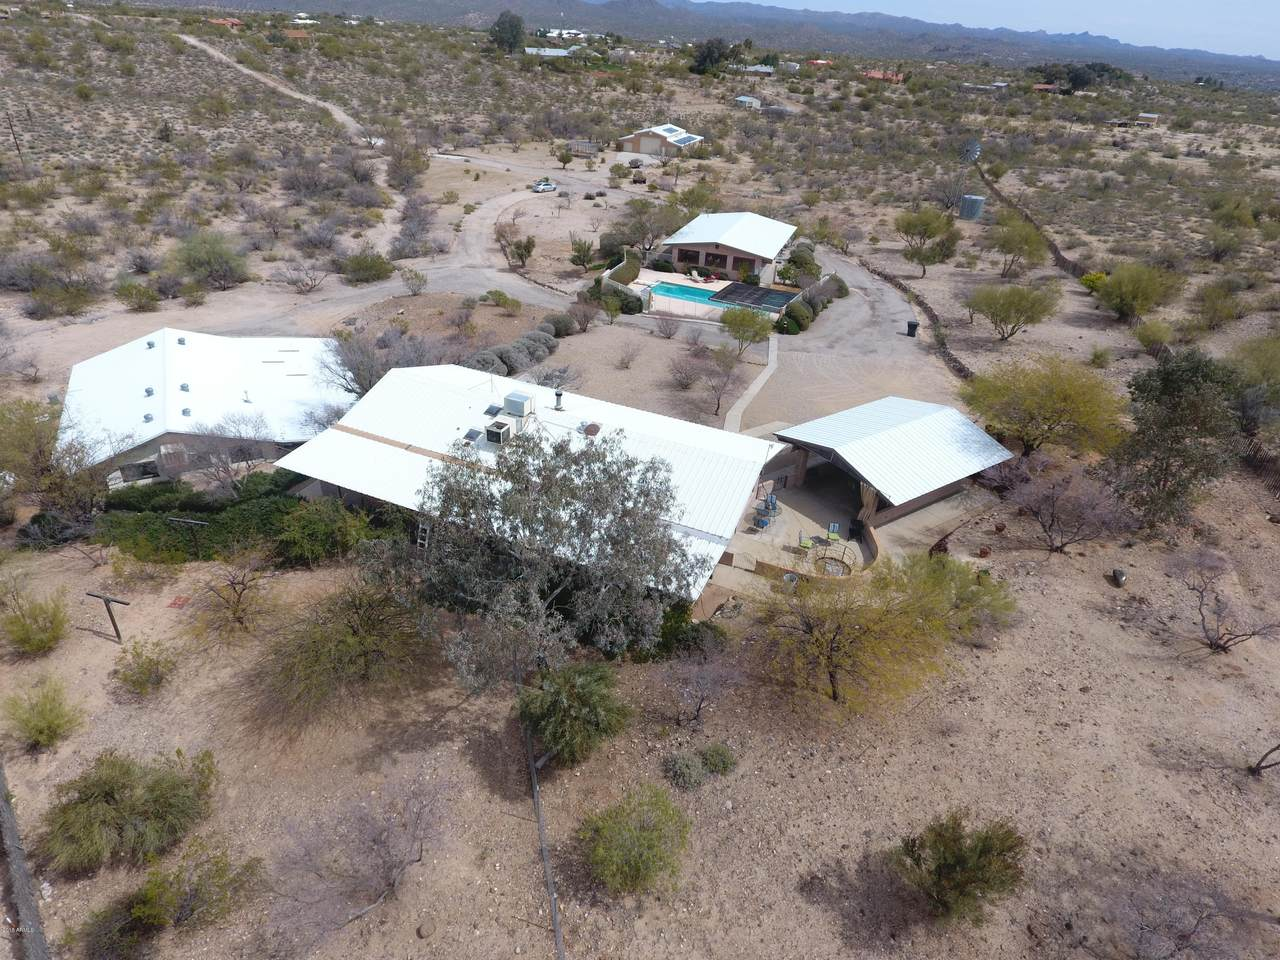 https://bt-photos.global.ssl.fastly.net/armls/orig_boomver_1_5739157-2.jpg